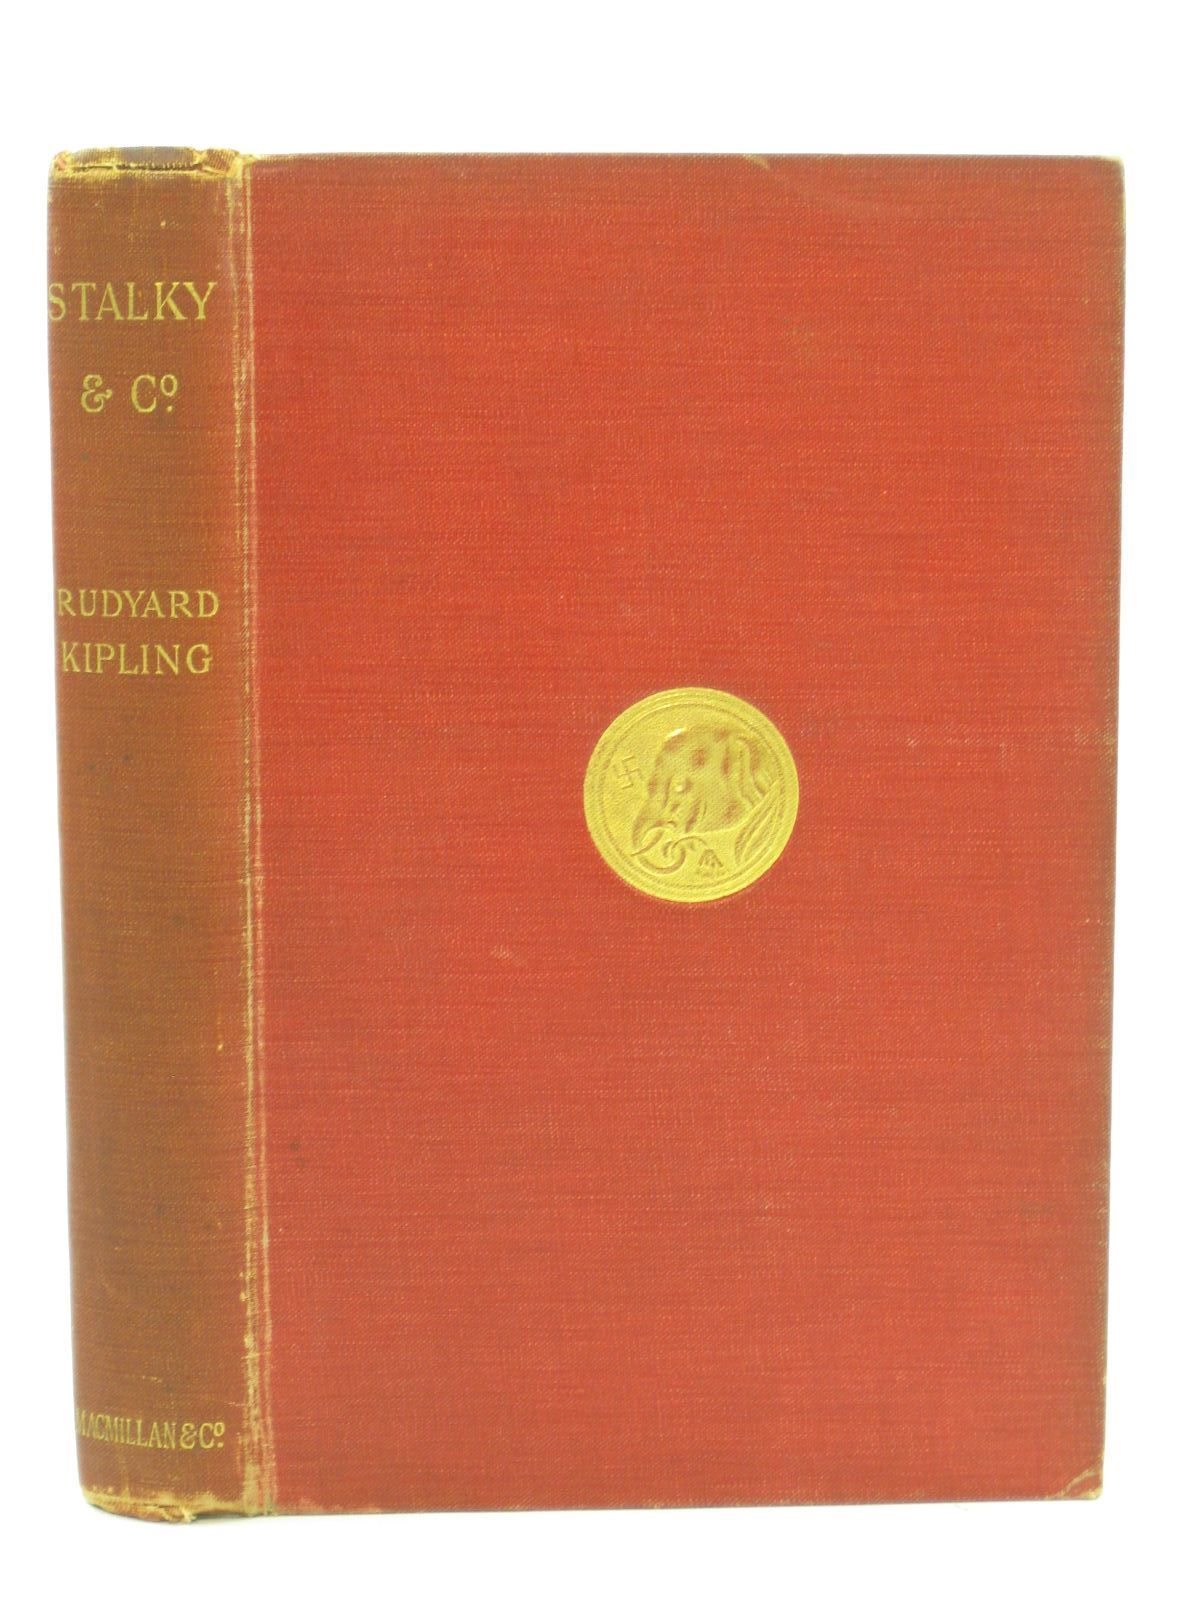 Photo of STALKY & CO. written by Kipling, Rudyard published by Macmillan & Co. Ltd. (STOCK CODE: 1507596)  for sale by Stella & Rose's Books